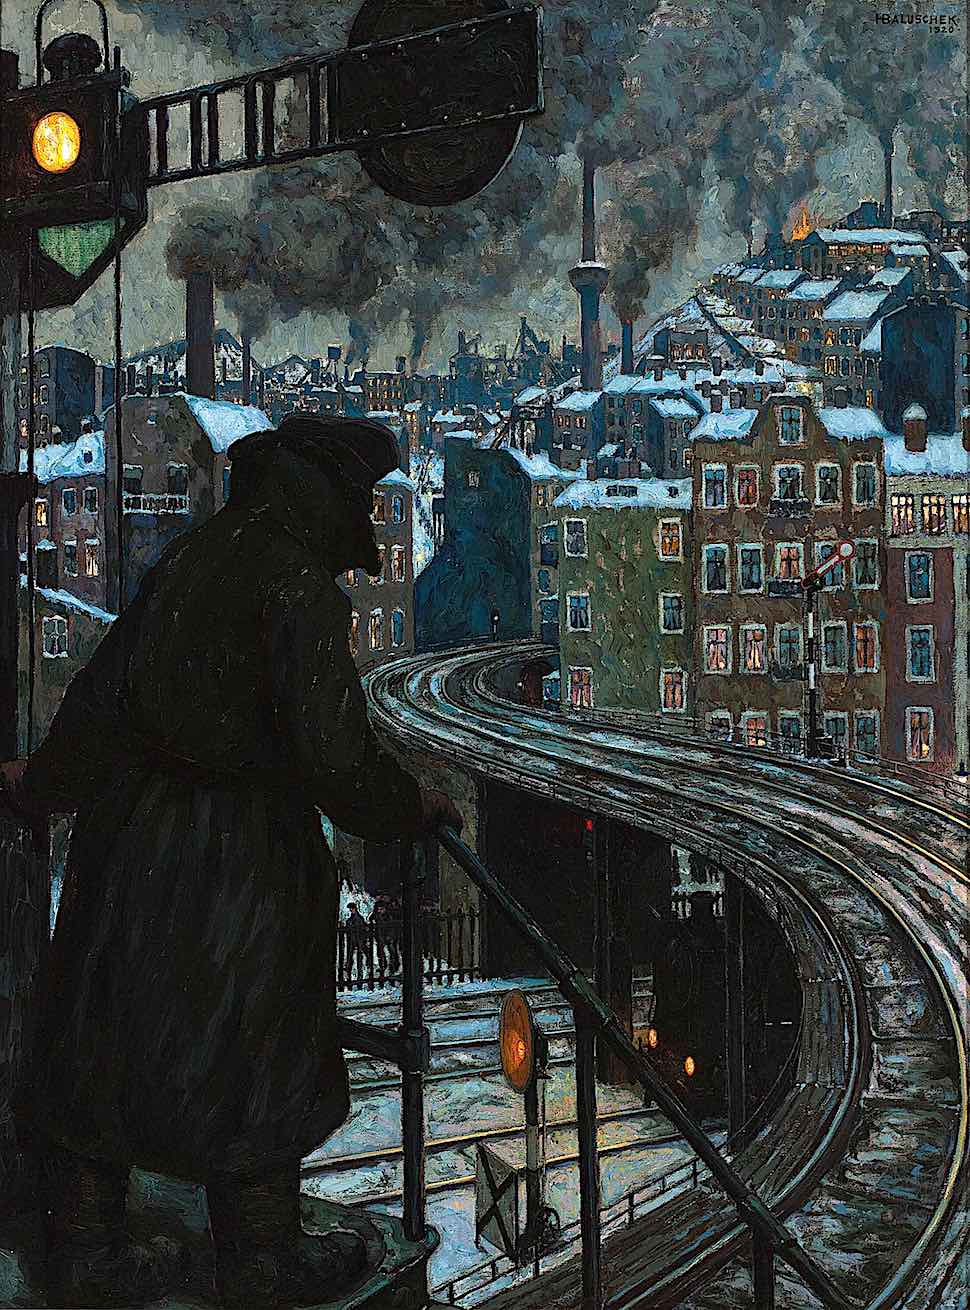 a Hans Baluschek 1920 painting of a rail worker at night